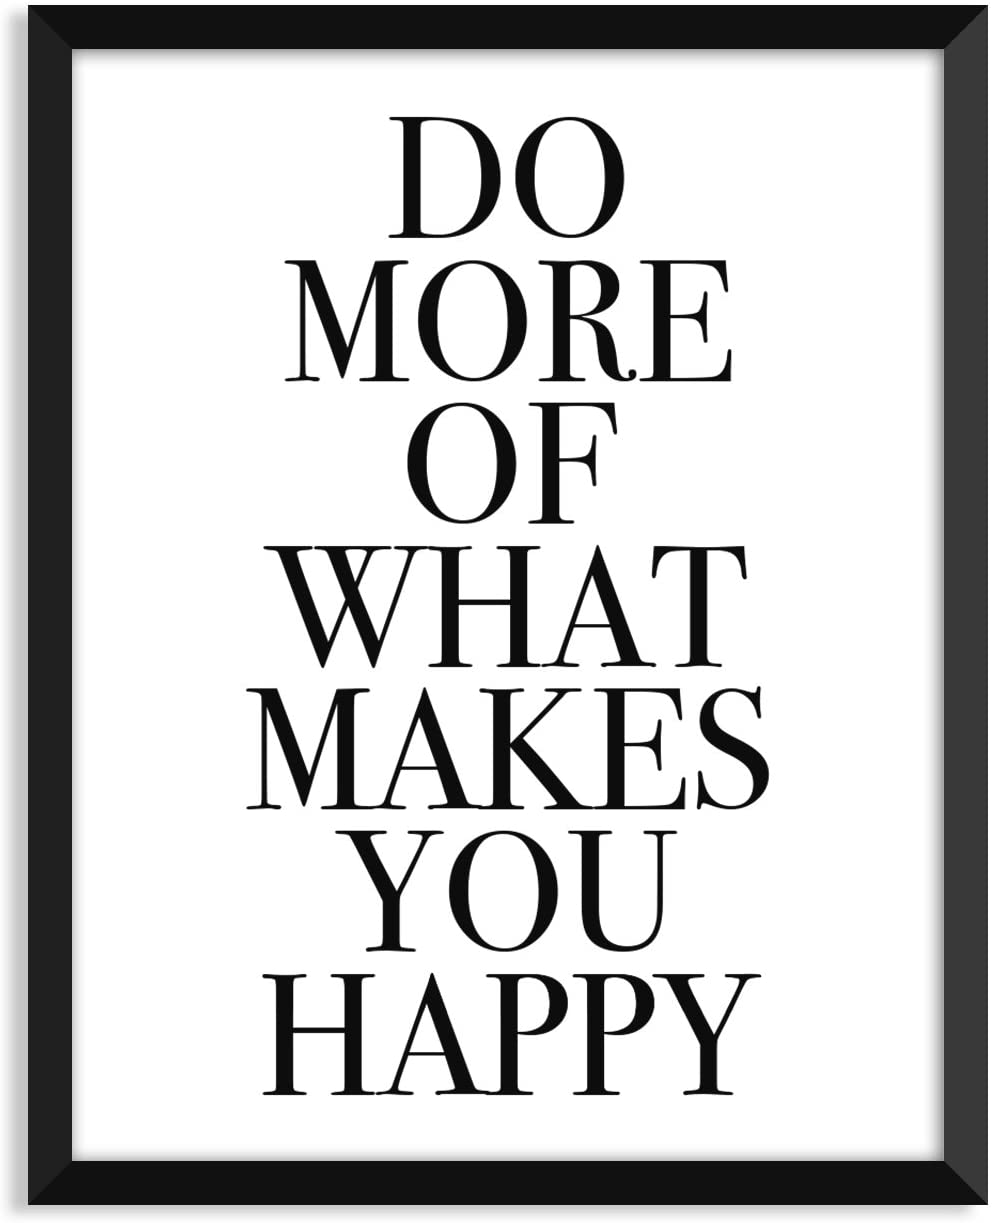 Serif Design Studios Do More of What Makes You Happy - Centered - Unframed Art Print Poster or Greeting Card